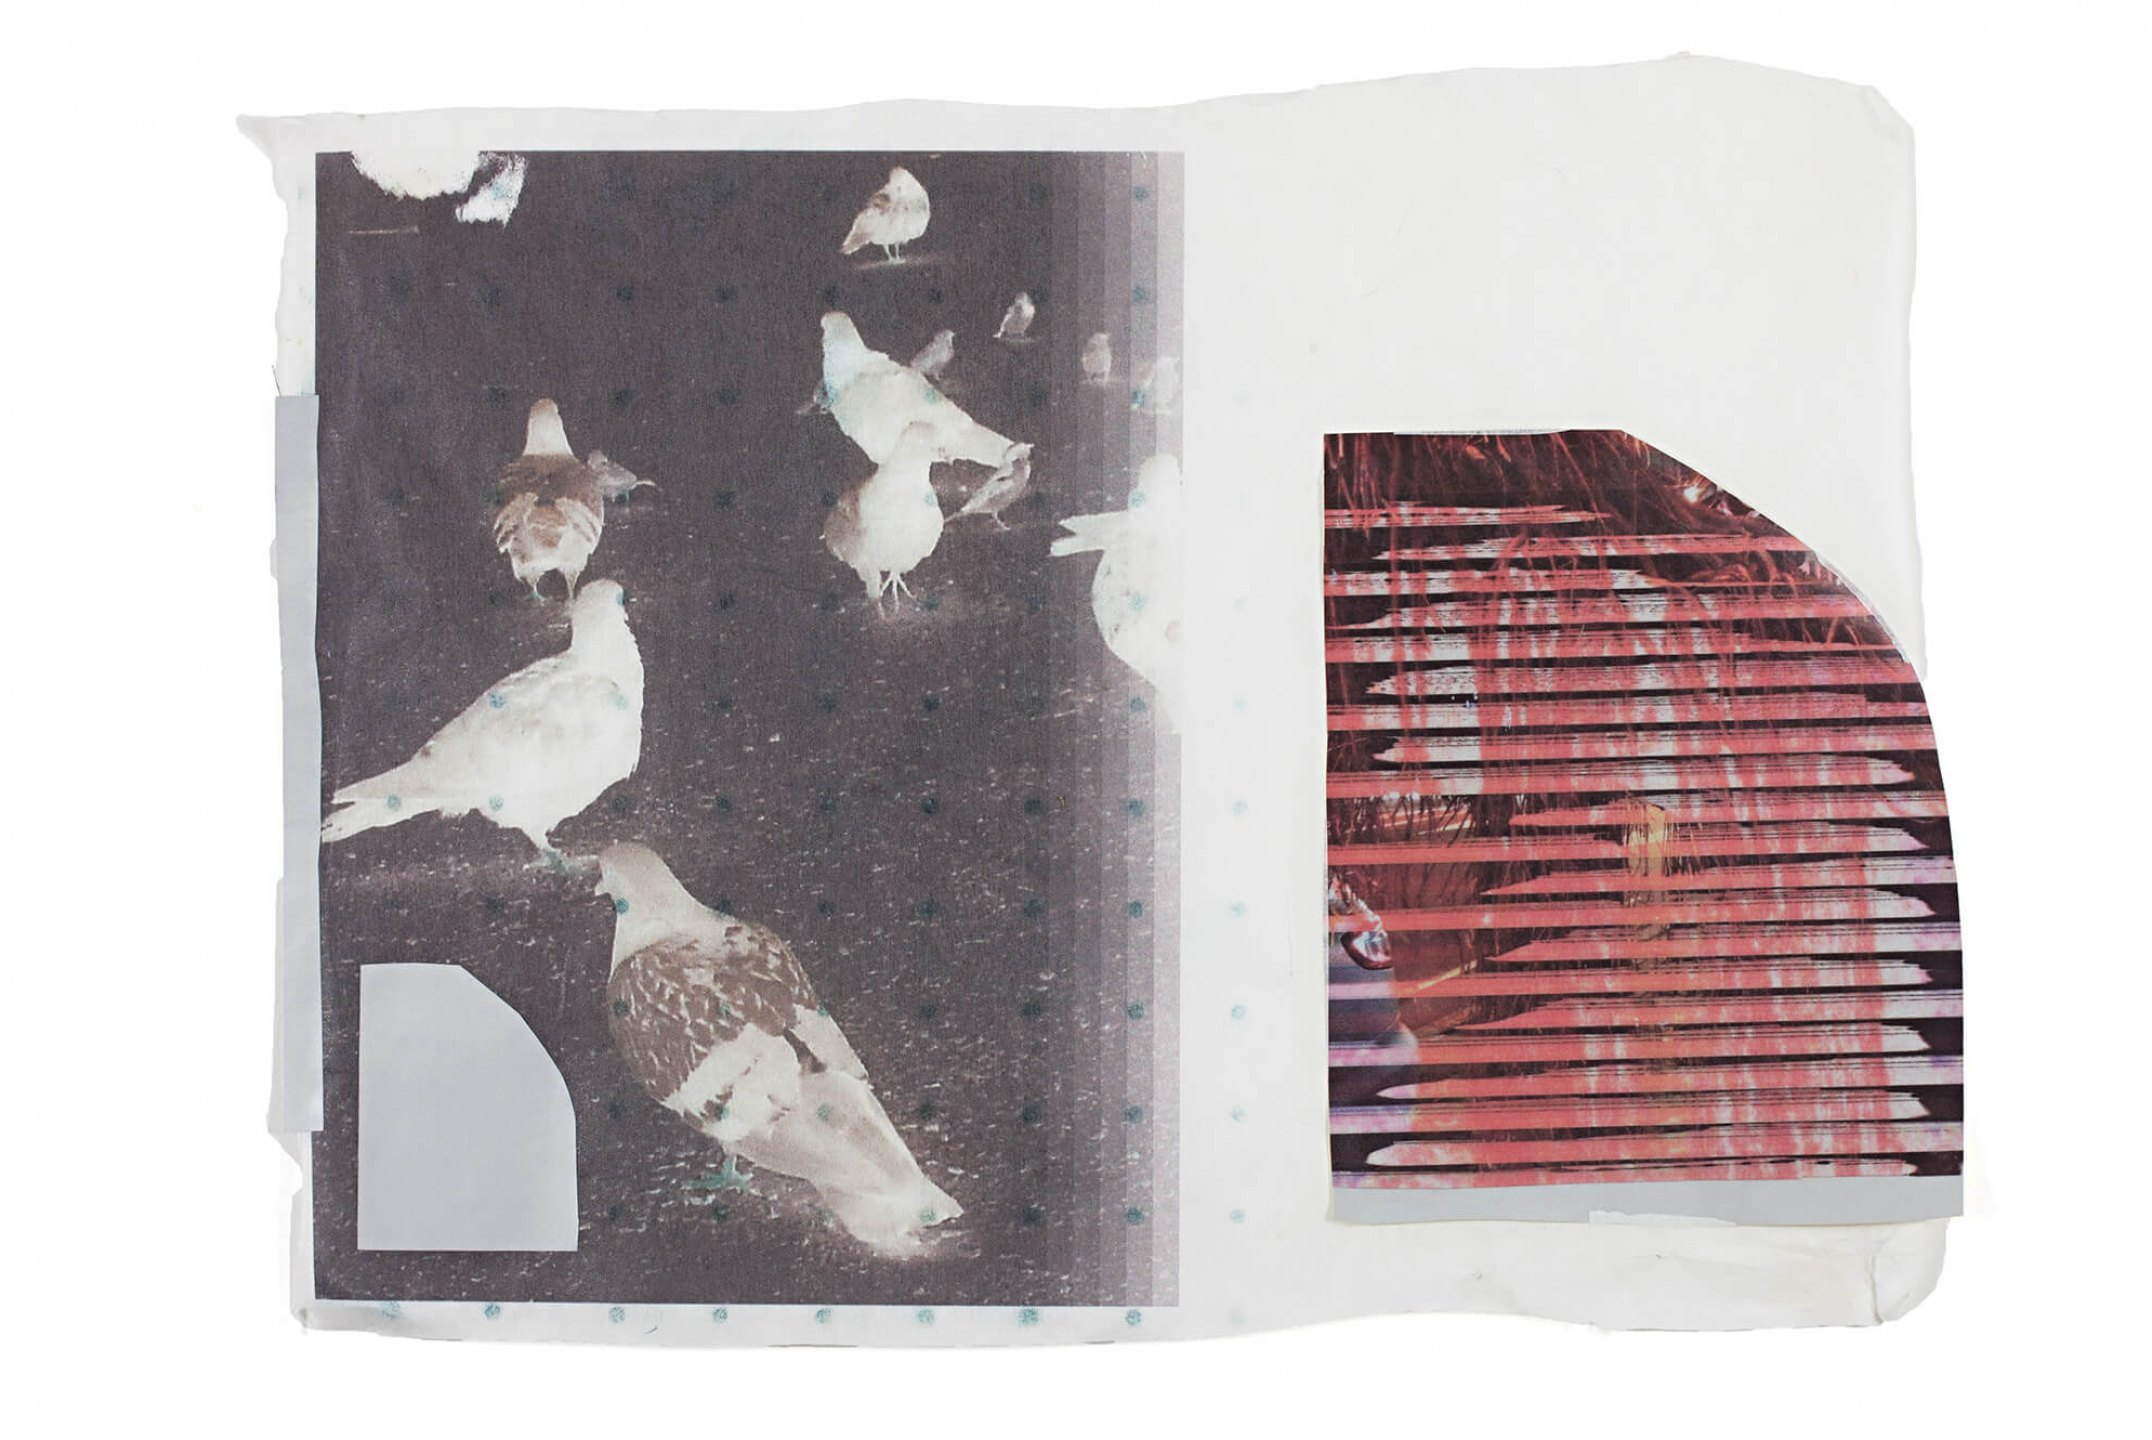 Marina Perez Simão,<em>Untitled,</em> 2013, acrylic on plastic, plyester and printing on reflexive paper, 62 × 46 cm - Mendes Wood DM